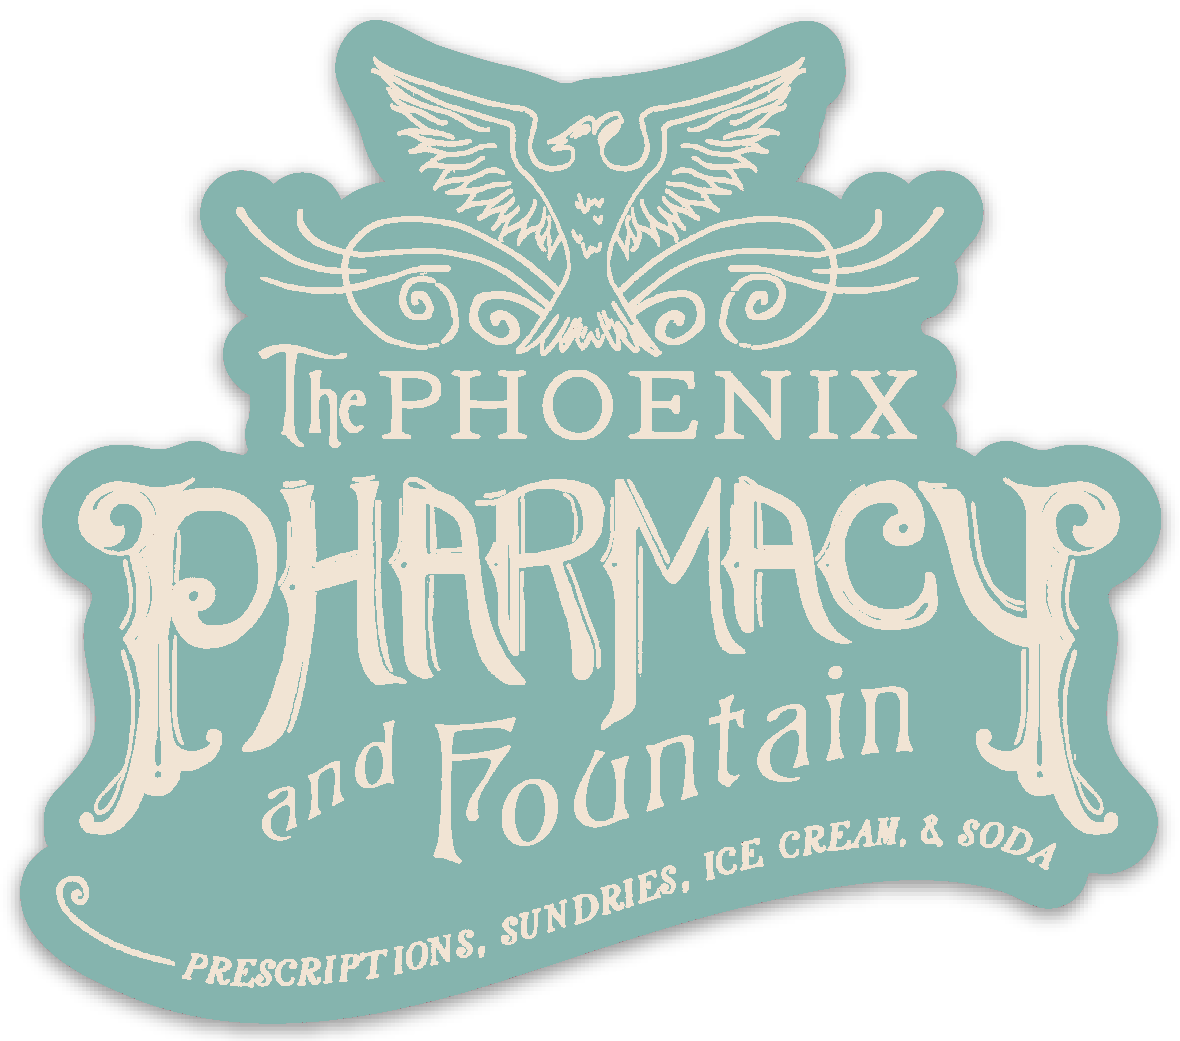 The Phoenix Pharmacy